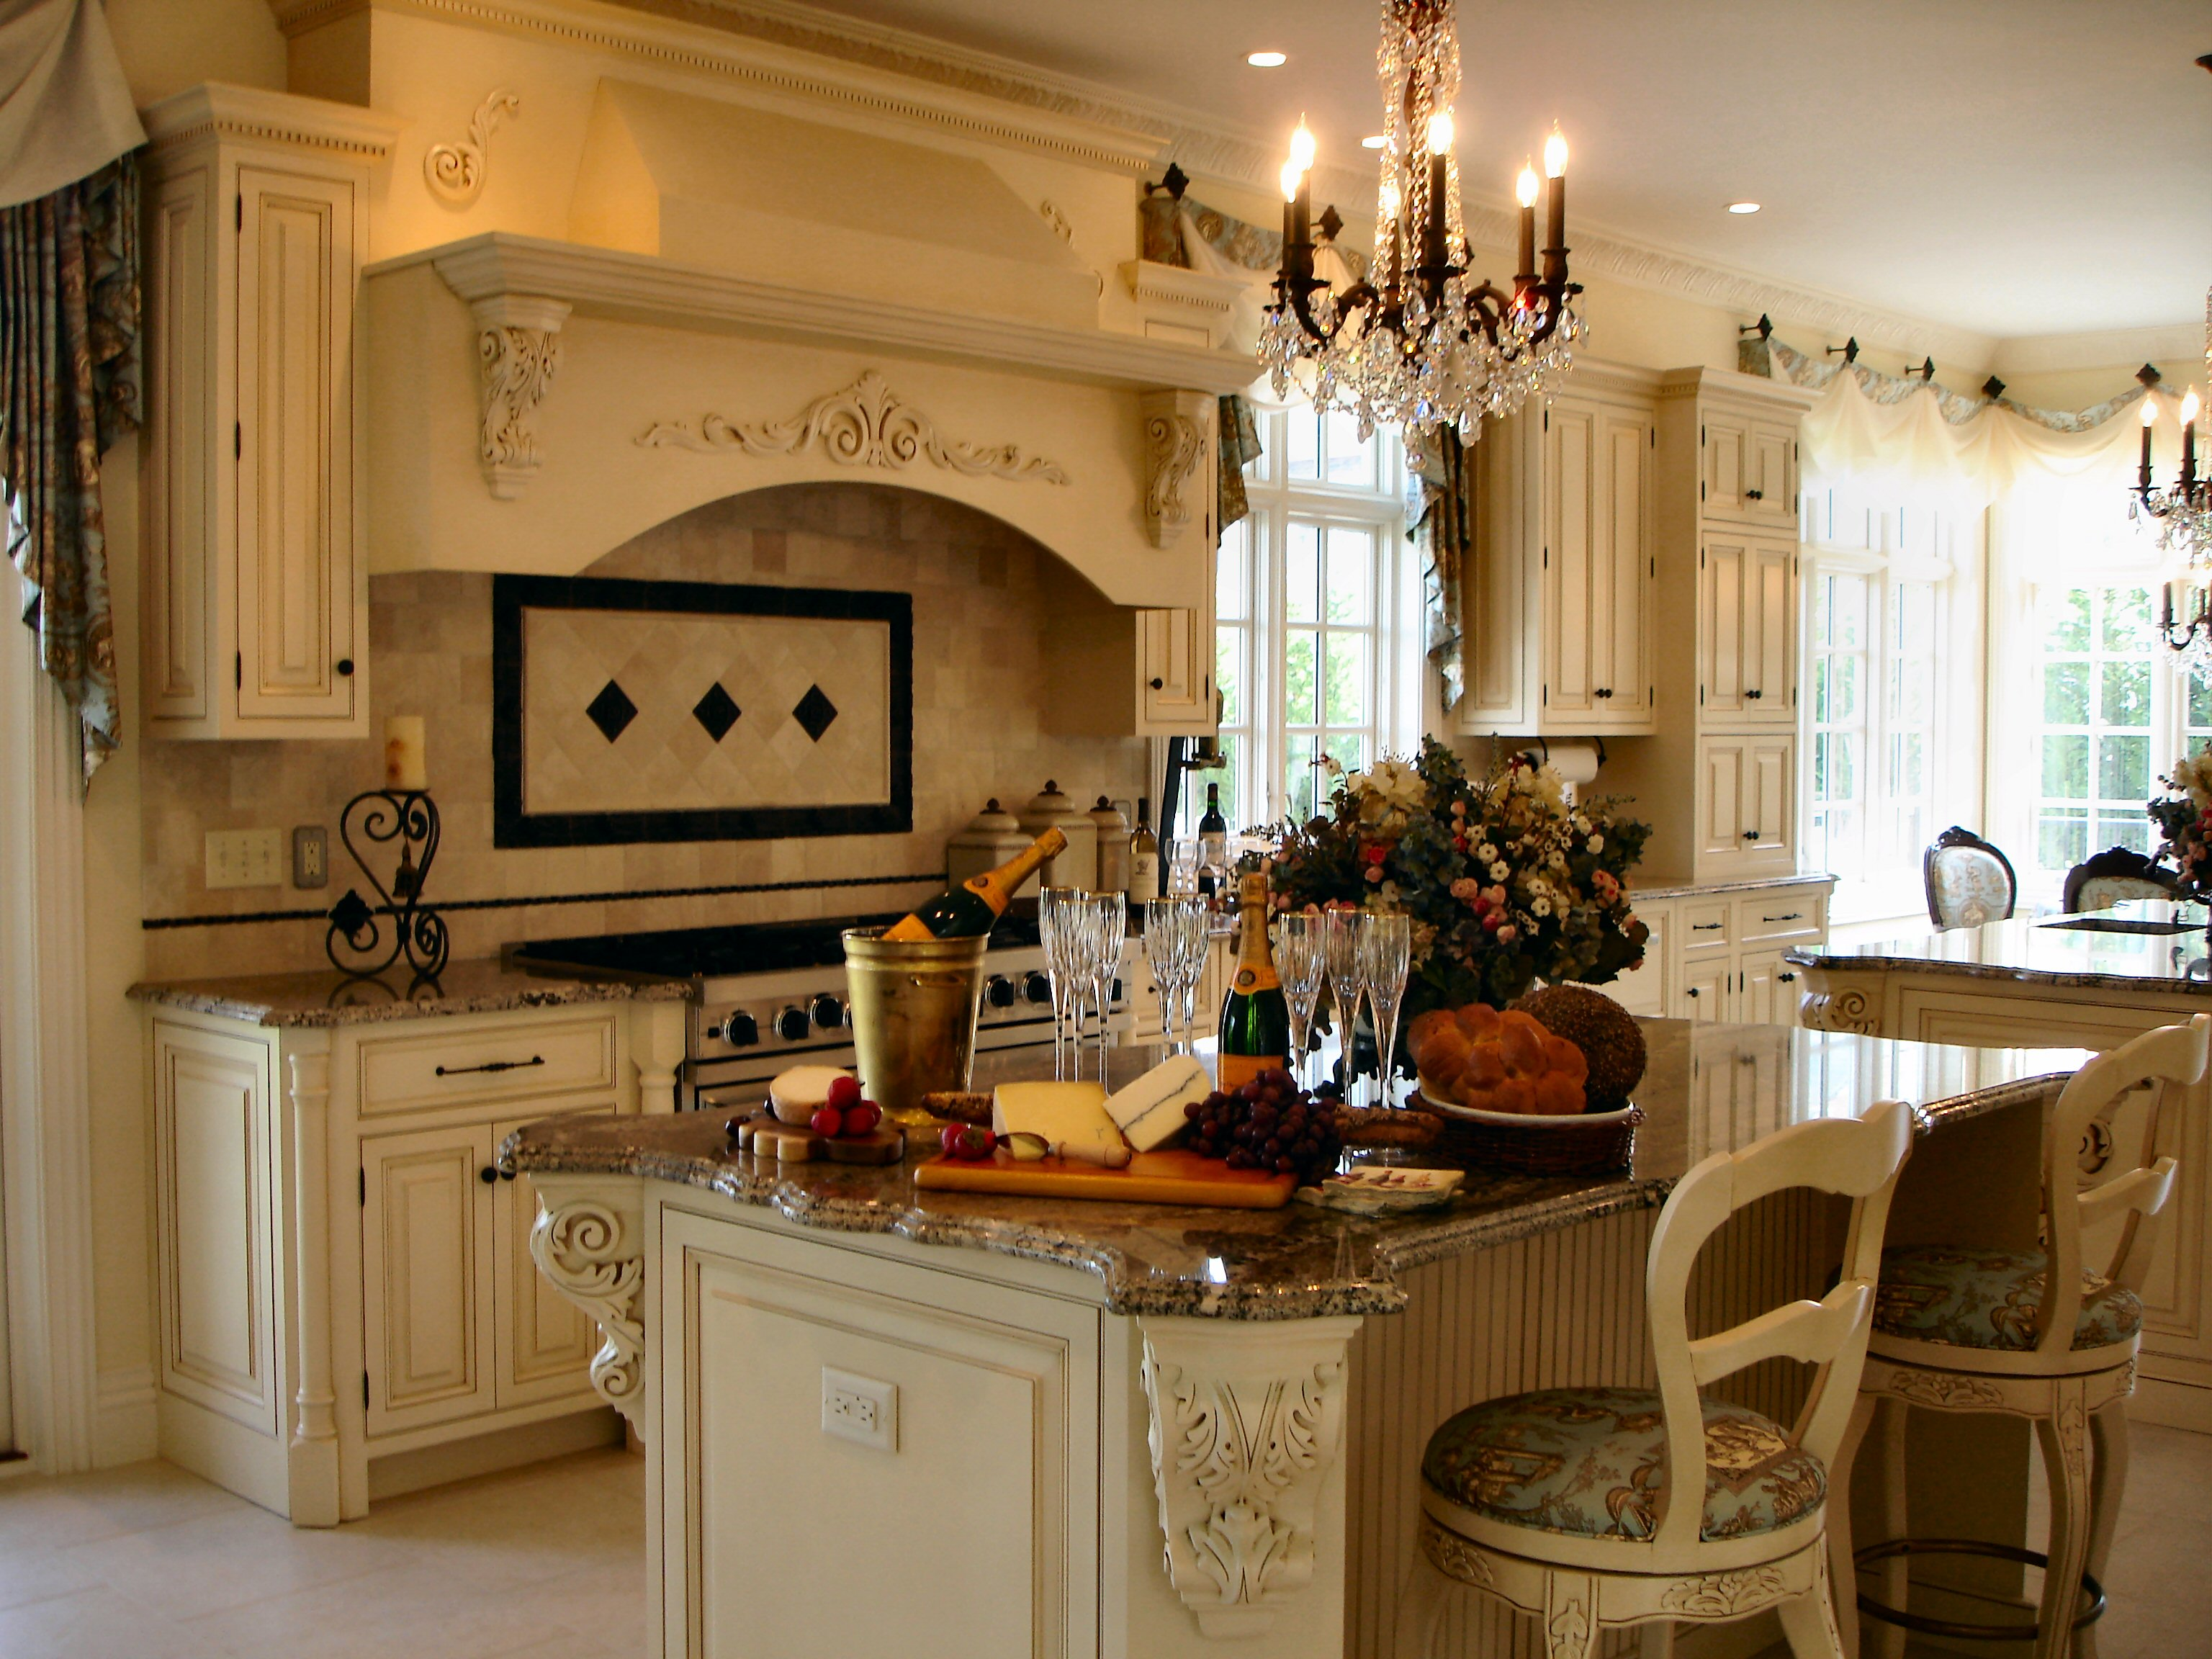 Kitchen Remodeling Nj Ideas Fascinating Monmouth County Kitchen Remodeling Ideas To Inspire You Inspiration